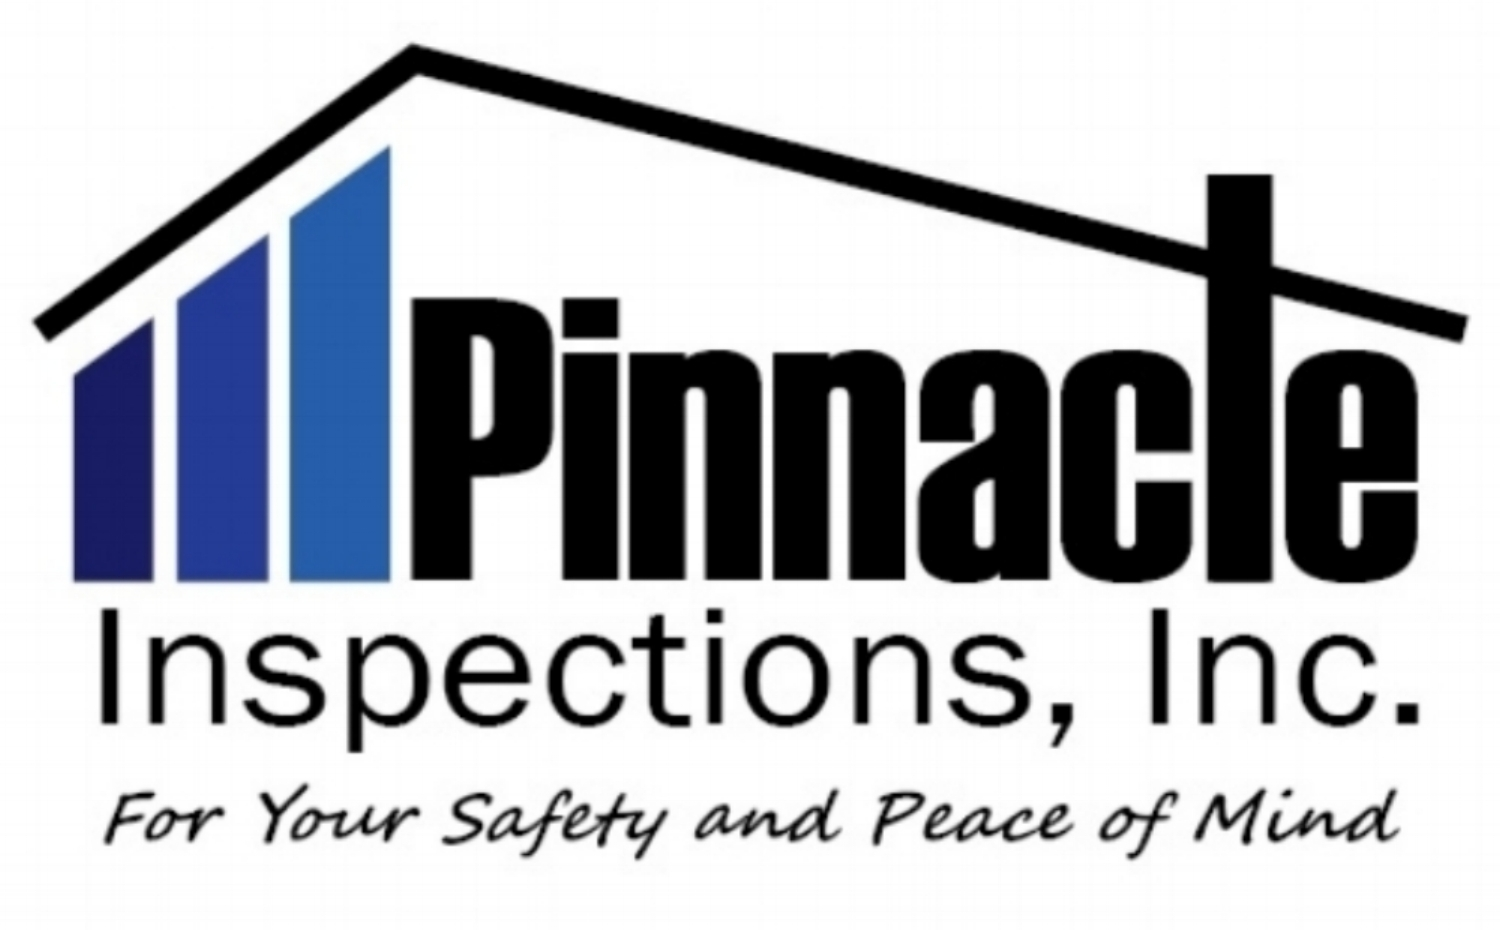 Pinnacle Inspections, Inc.